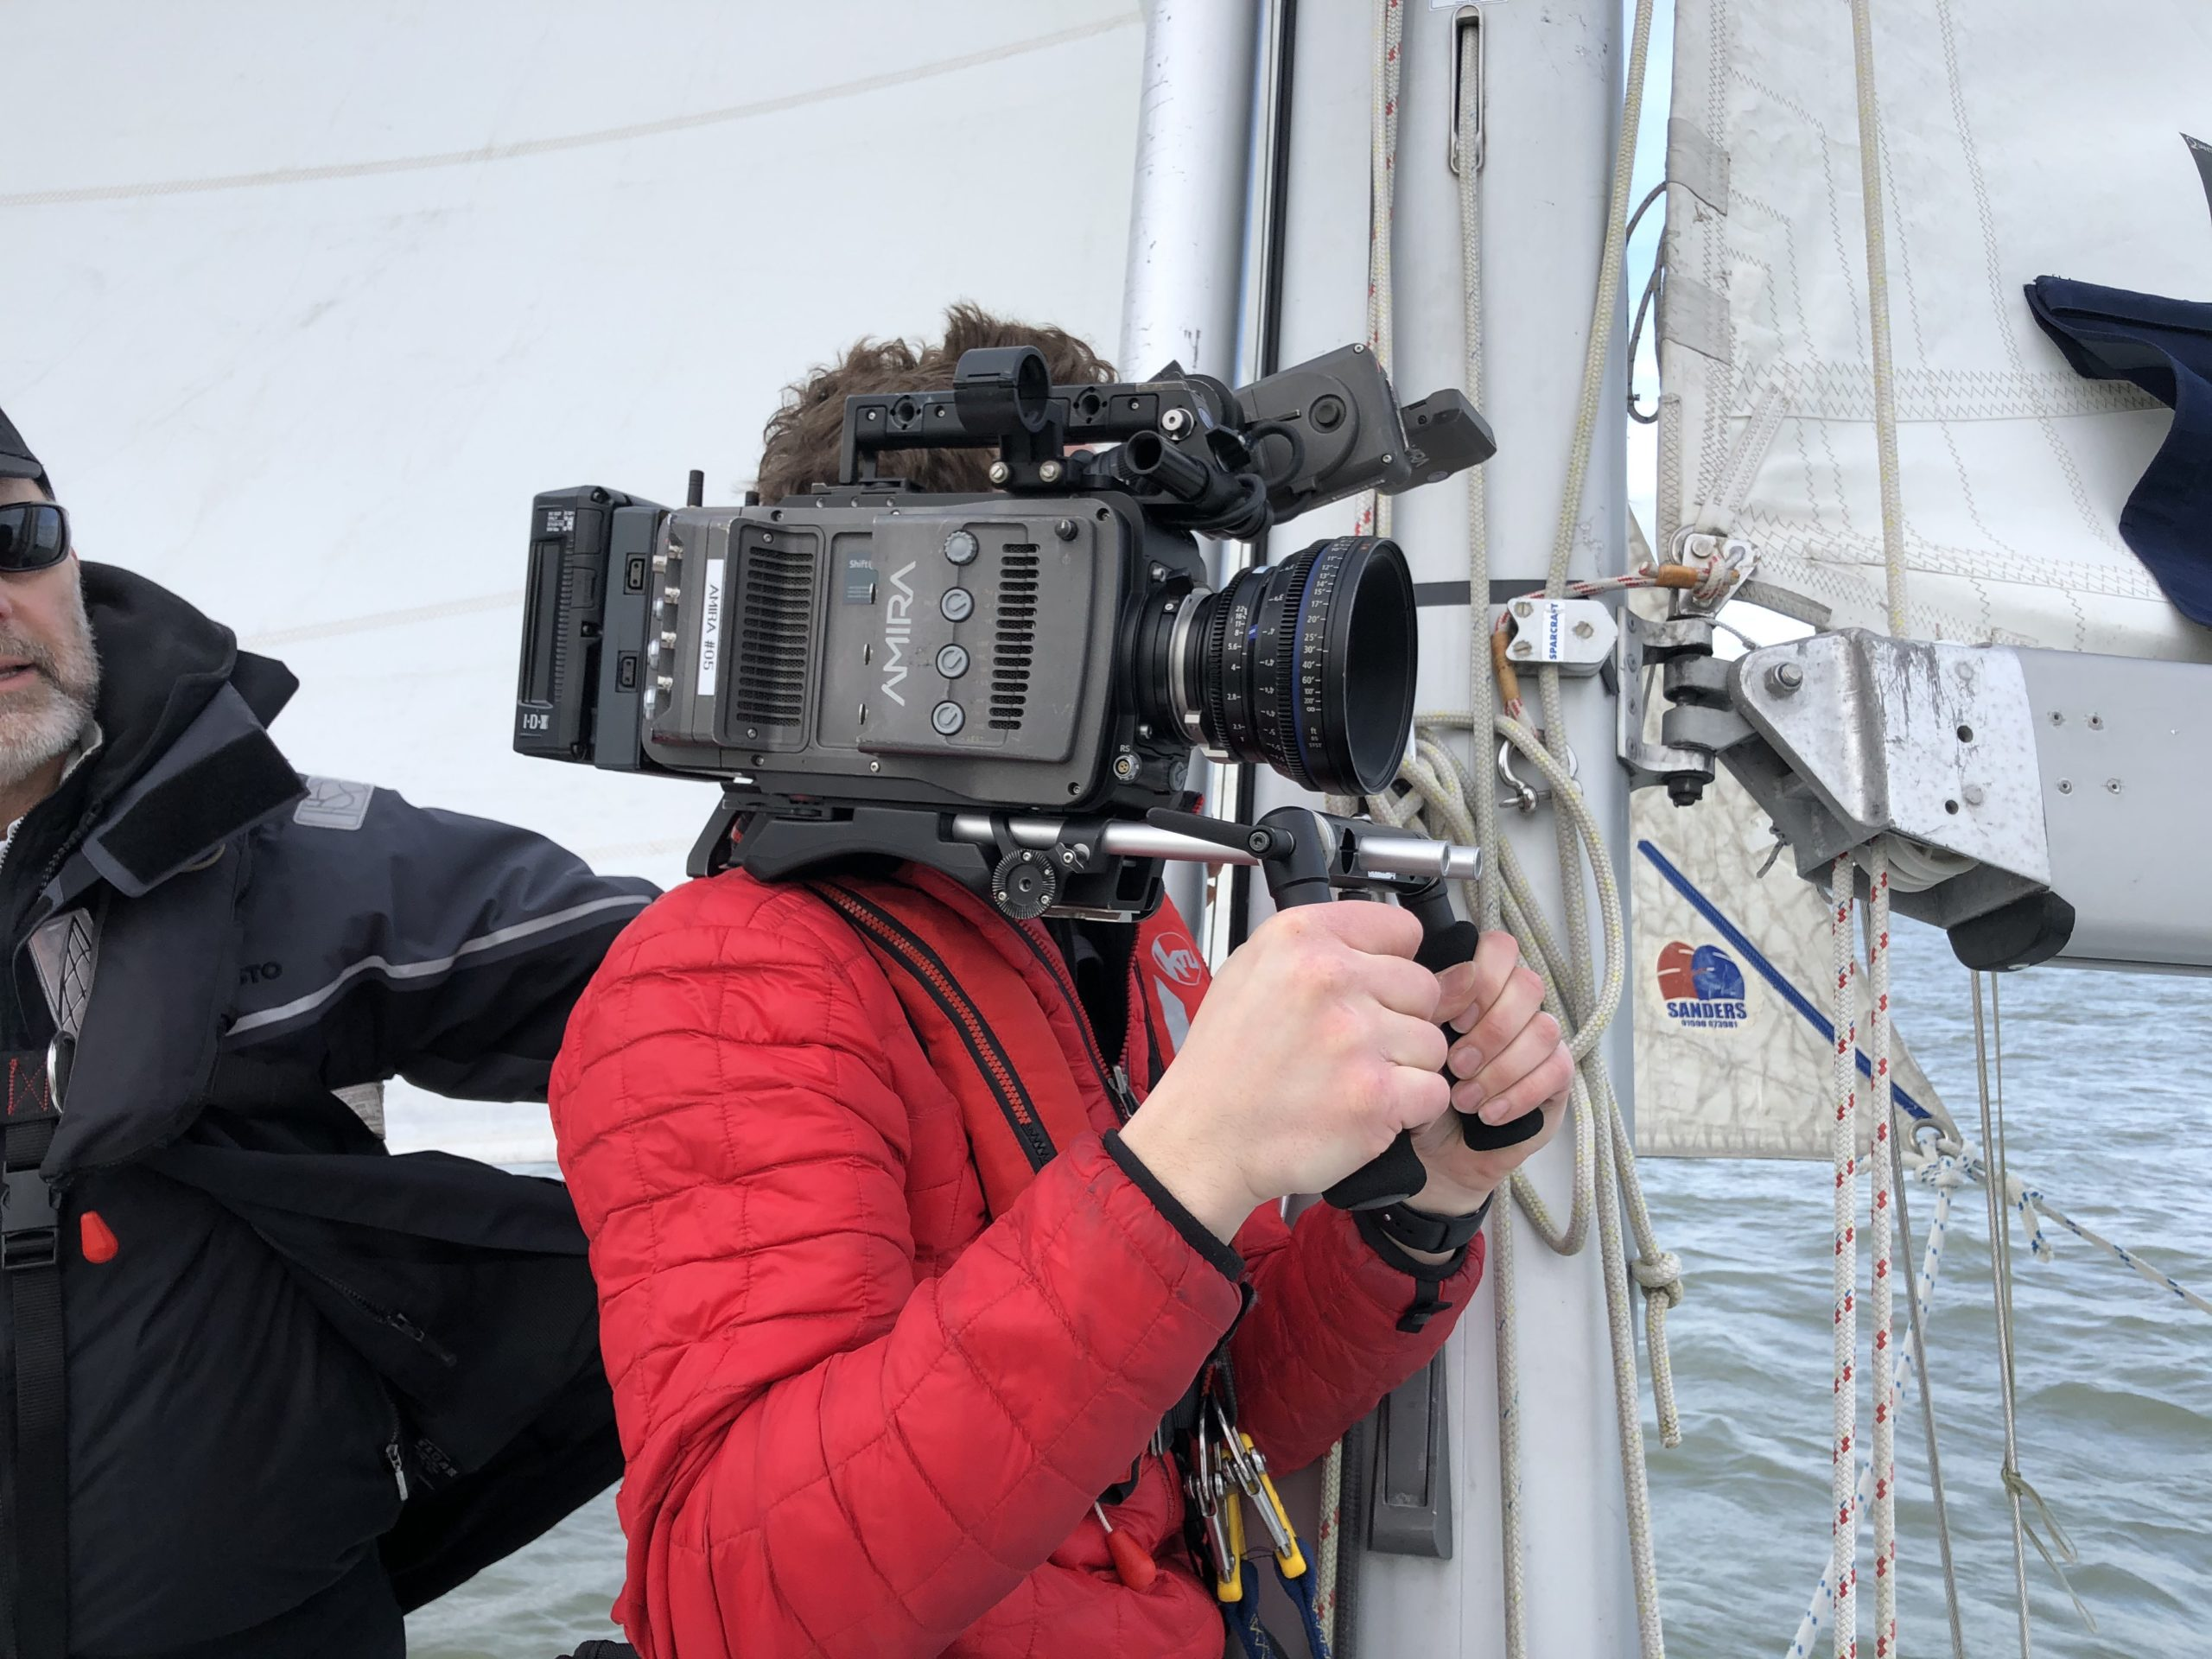 man filming on a boat holding a camera